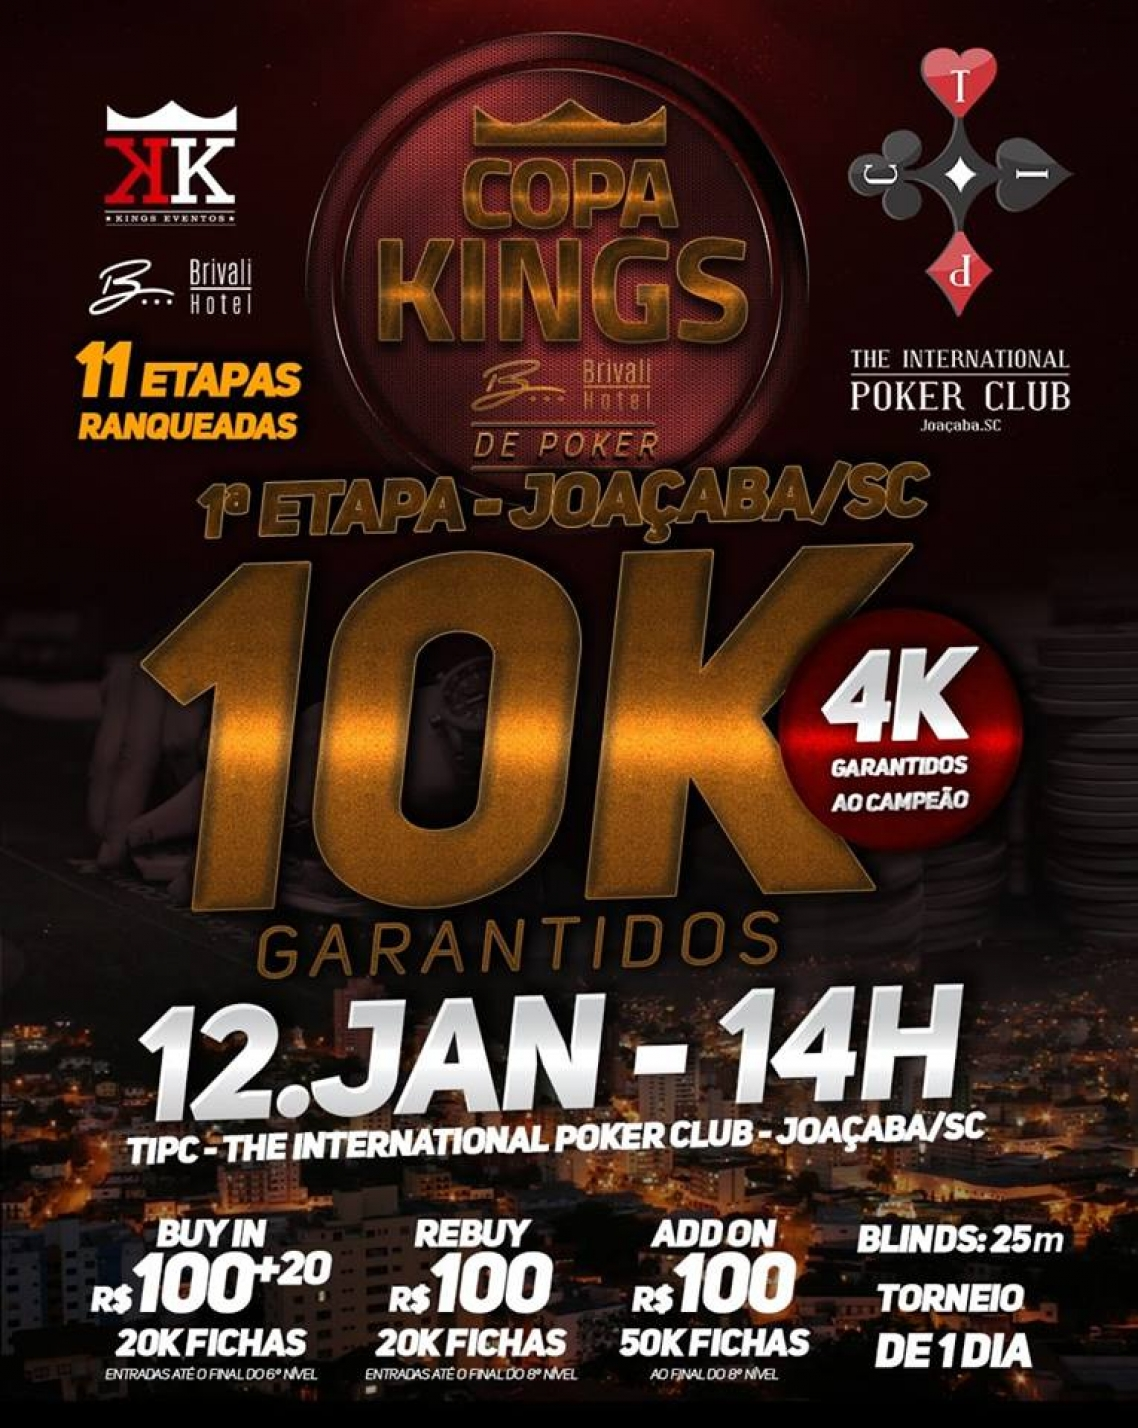 COPA KINGS BRIVALI 2019